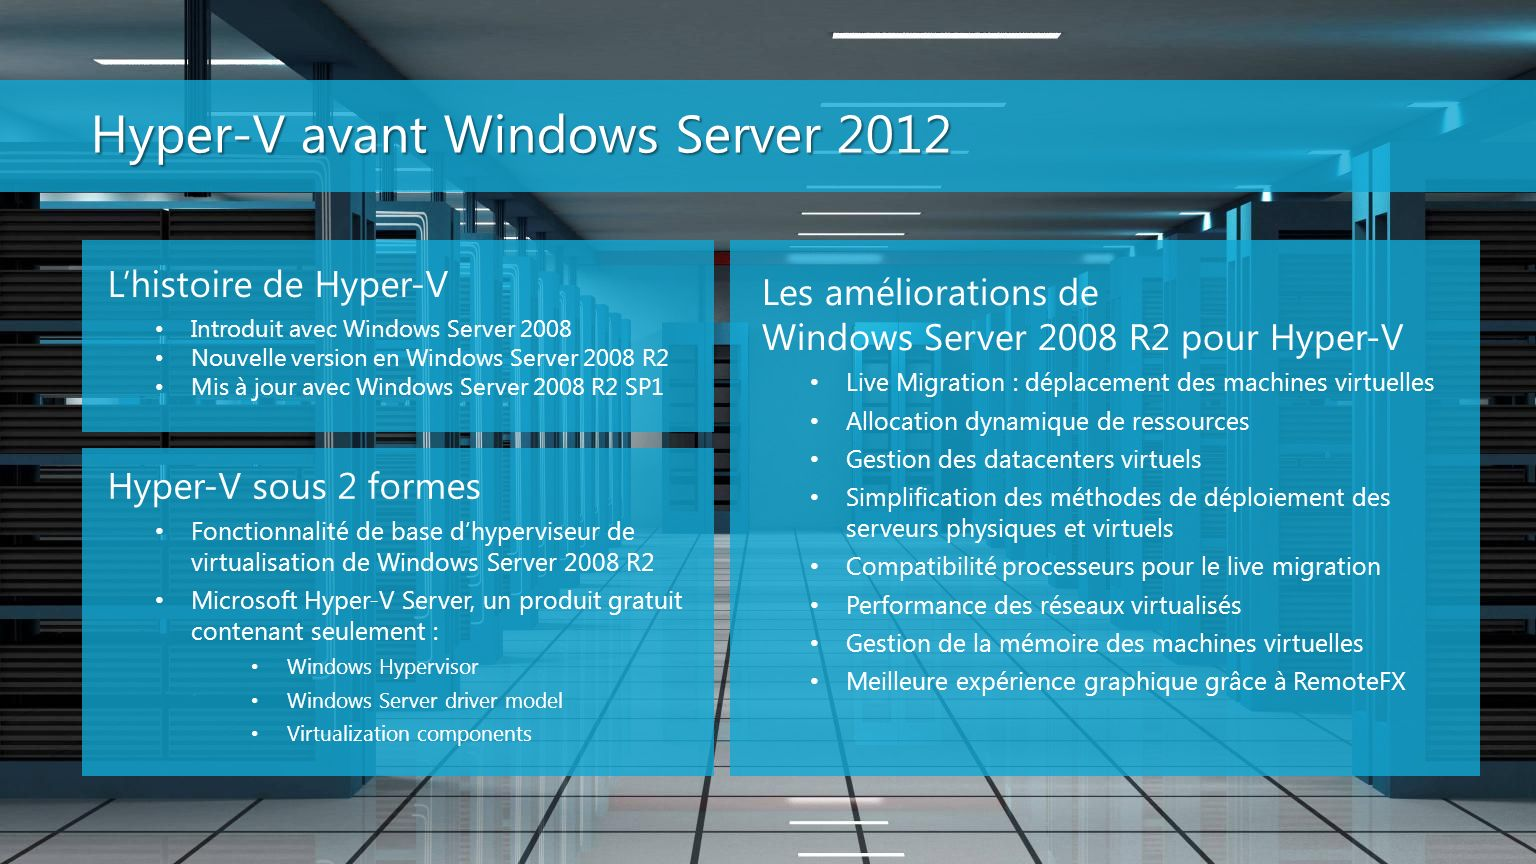 Hyper-V avant Windows Server 2012